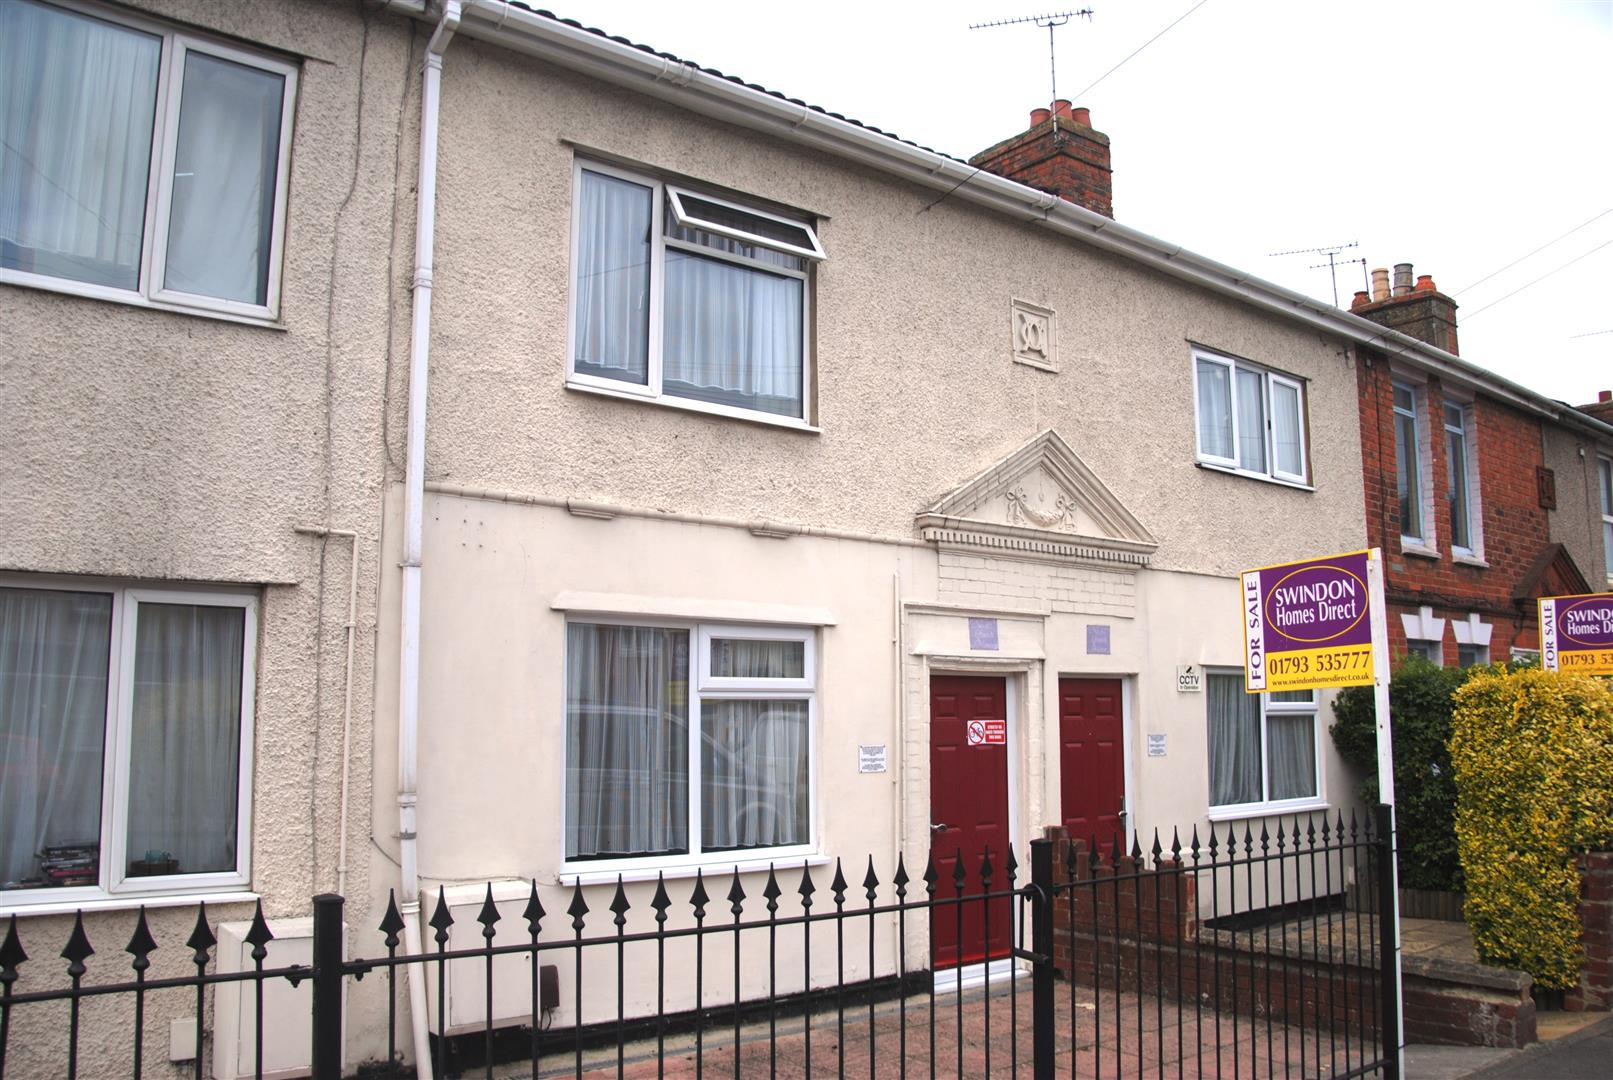 2 Bedrooms Terraced House for sale in Swindon